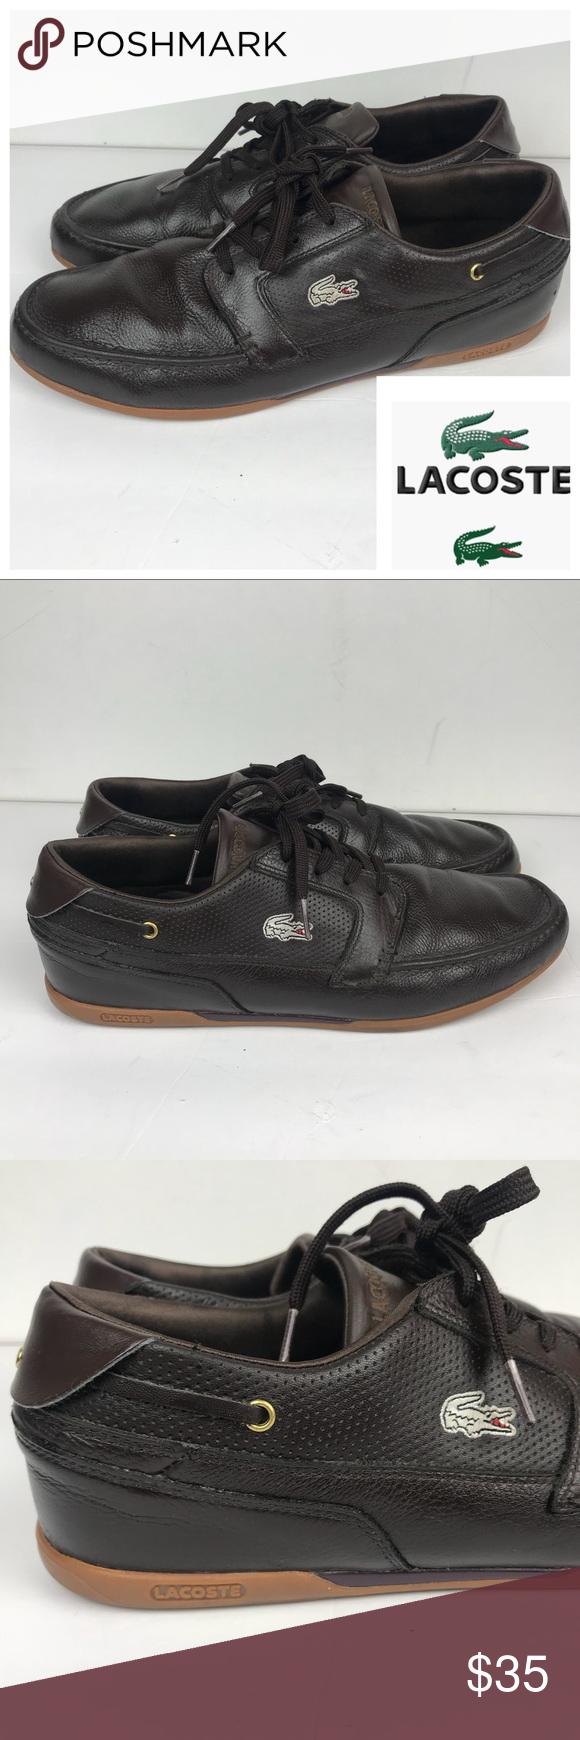 35fbe008dcd1e Lacoste Dreyfus Brown Leather Boat Shoes Sz 12 •Pre-Loved